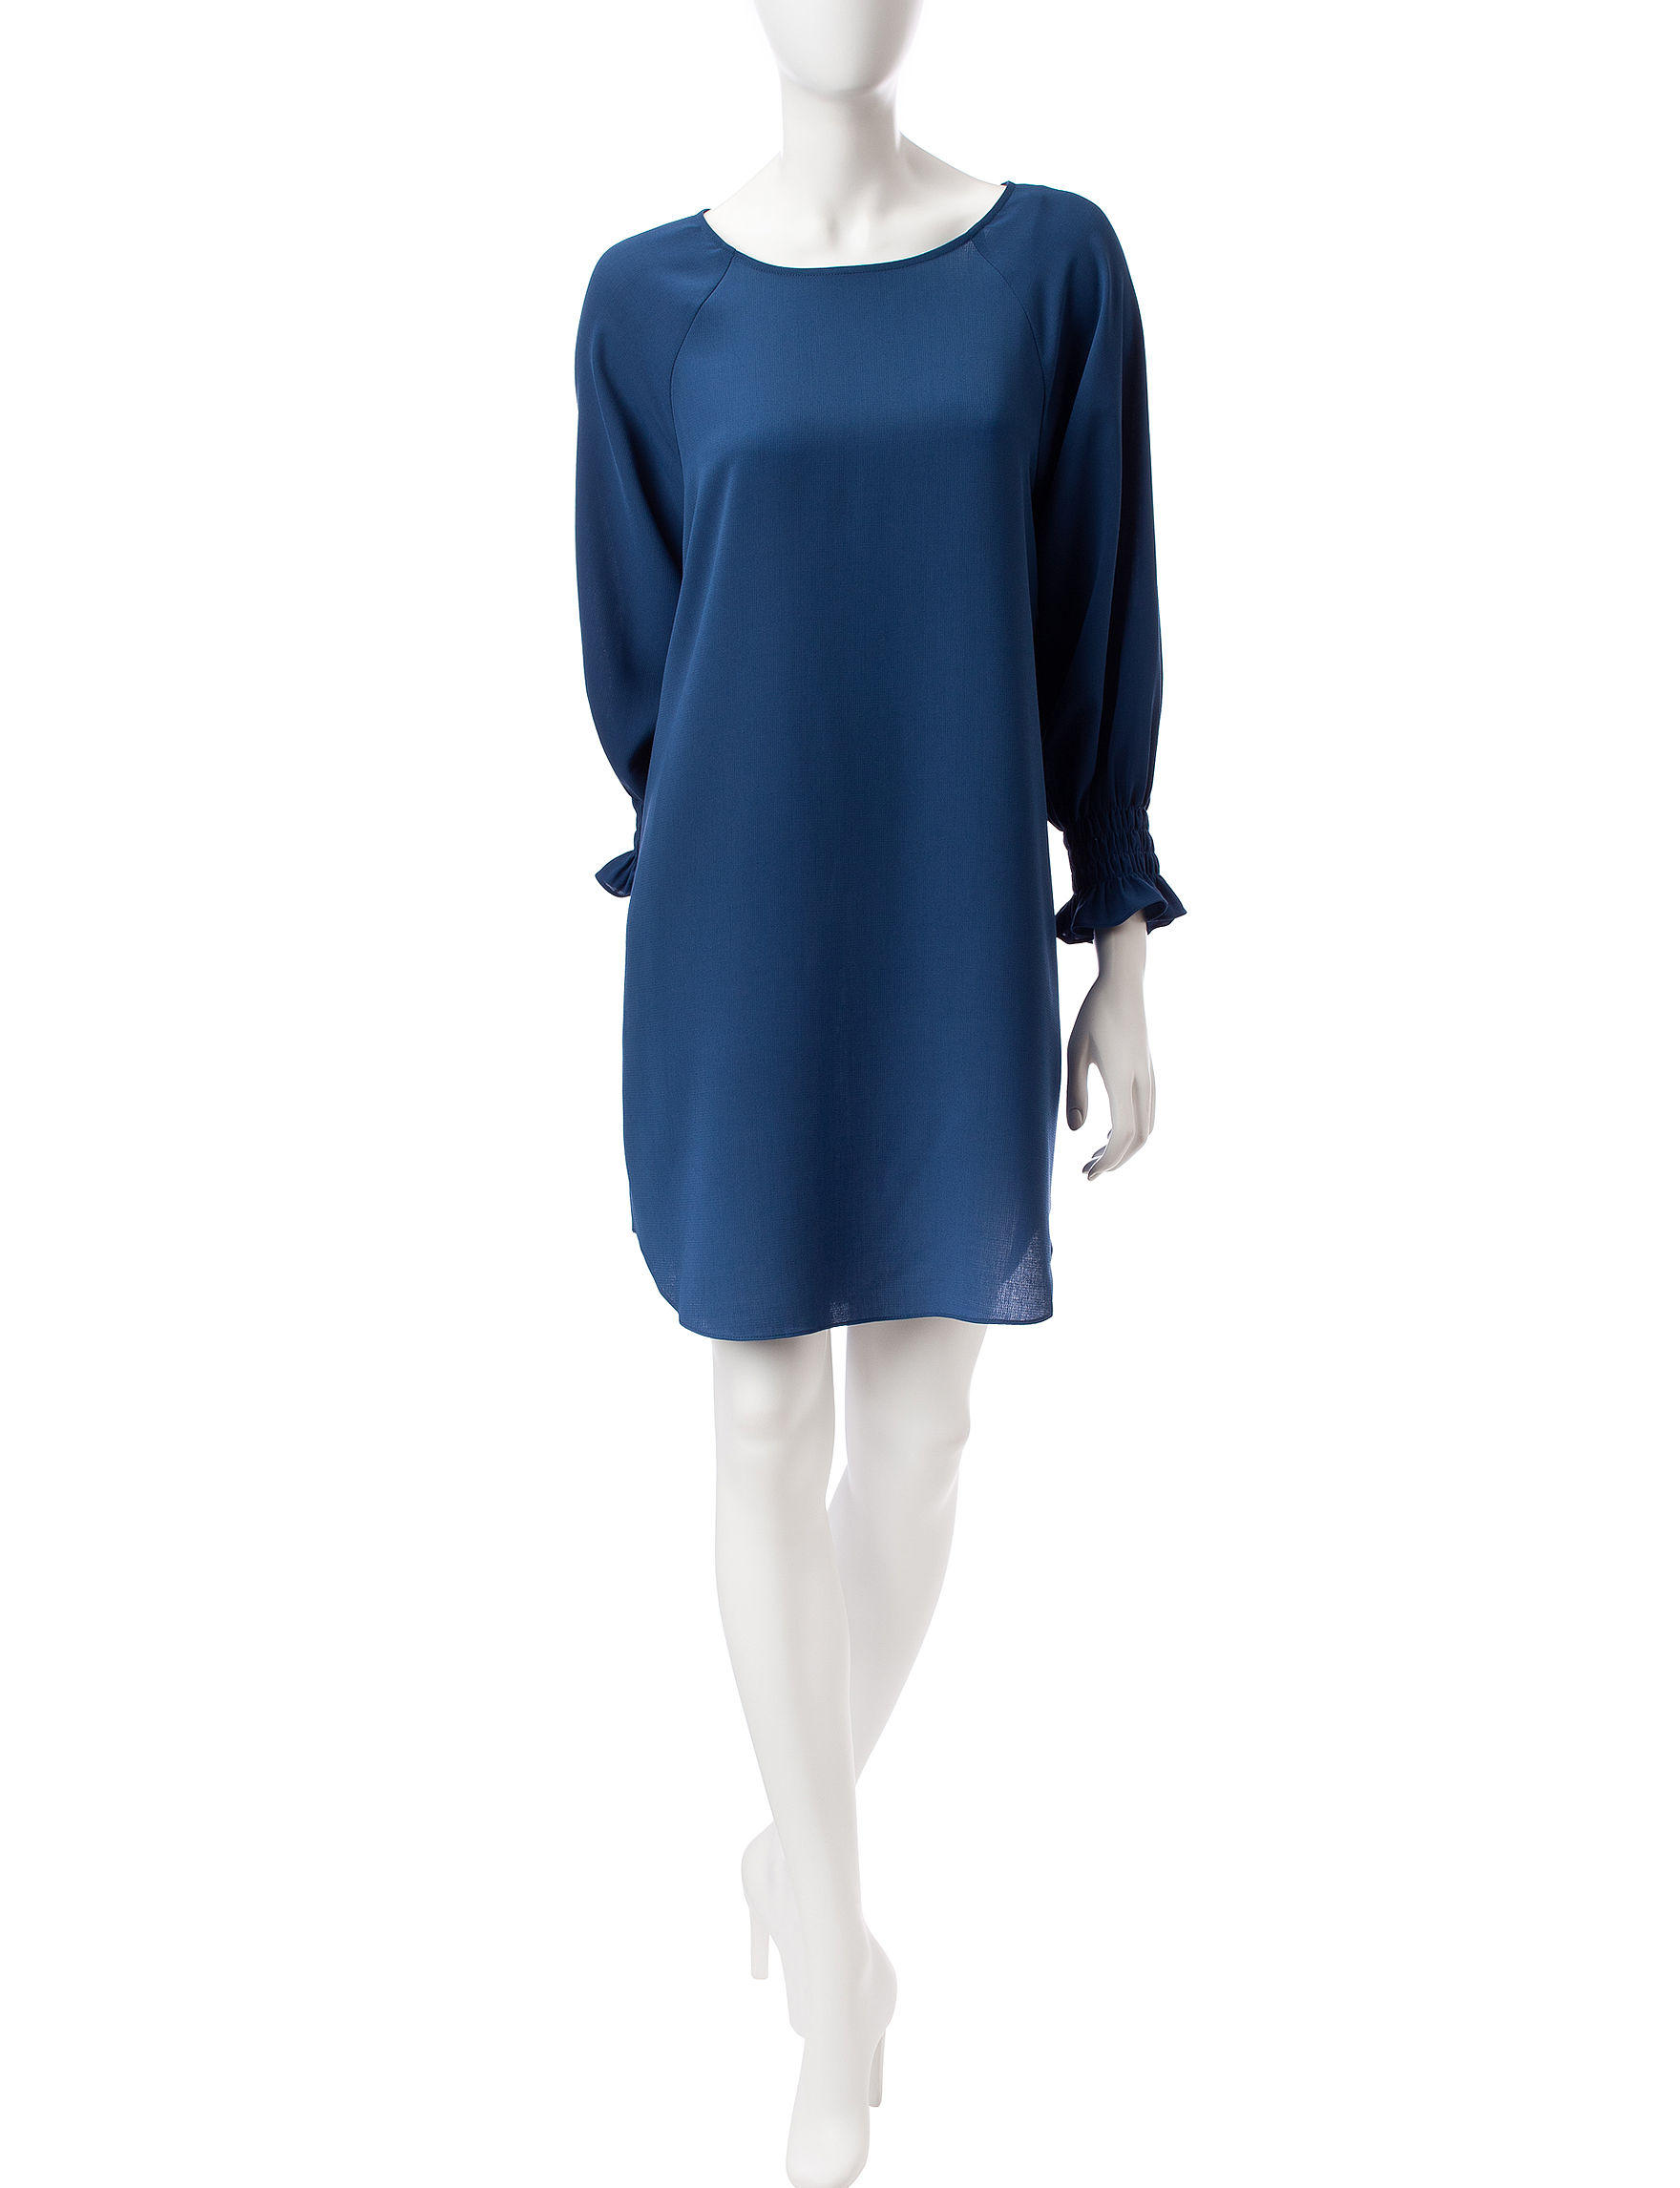 Nine West Blue Everyday & Casual Shift Dresses